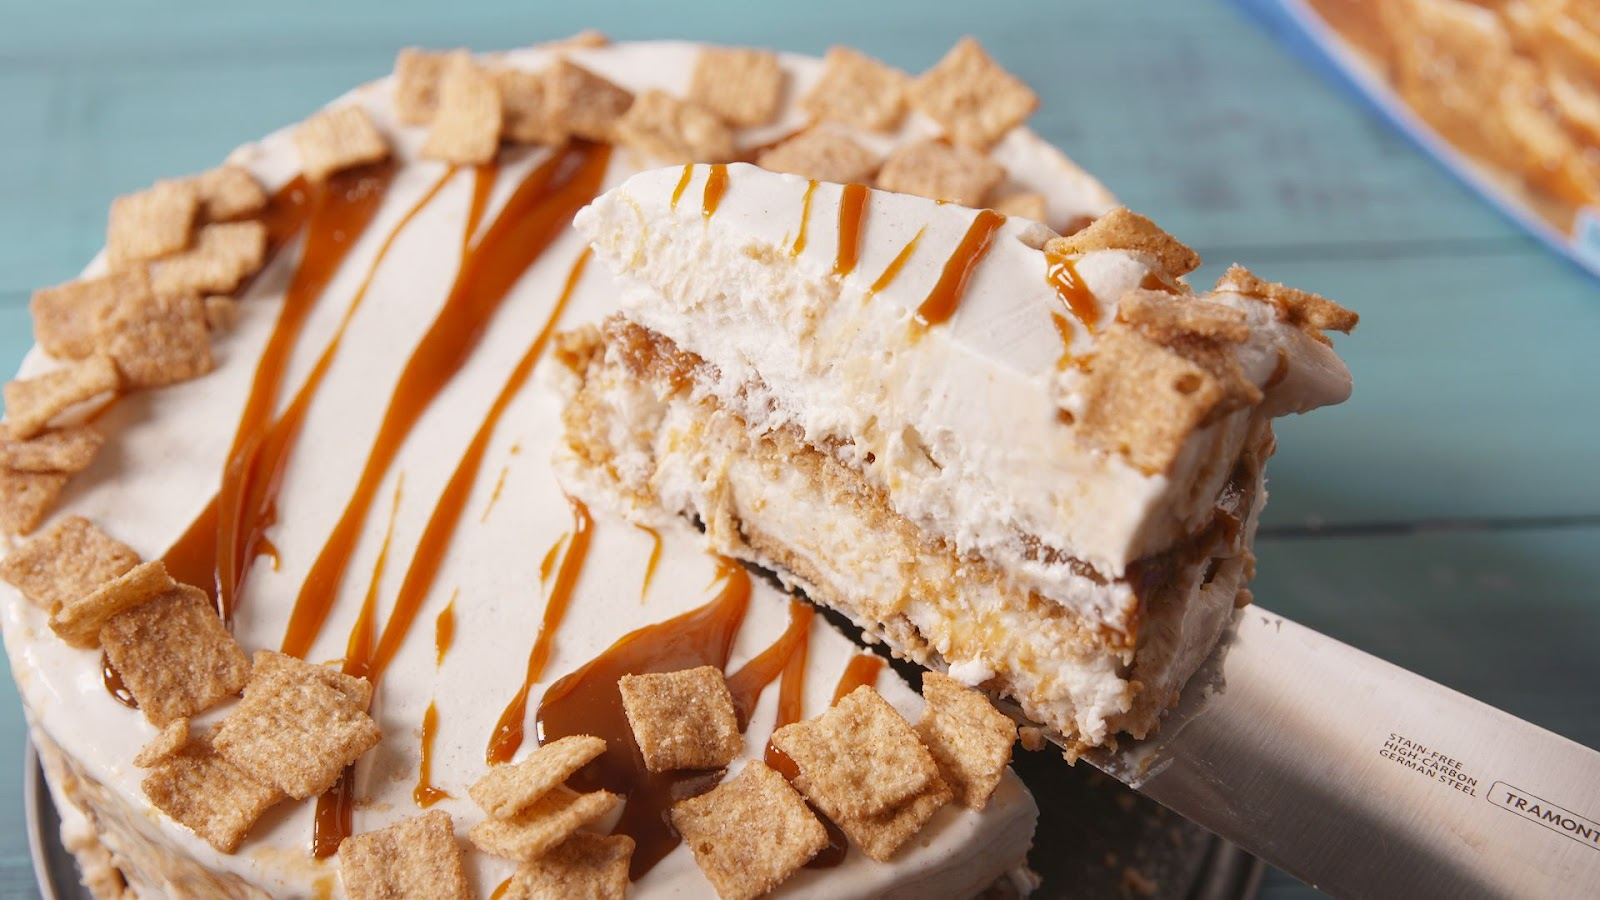 Cinnamon toast crunch ice cream cake